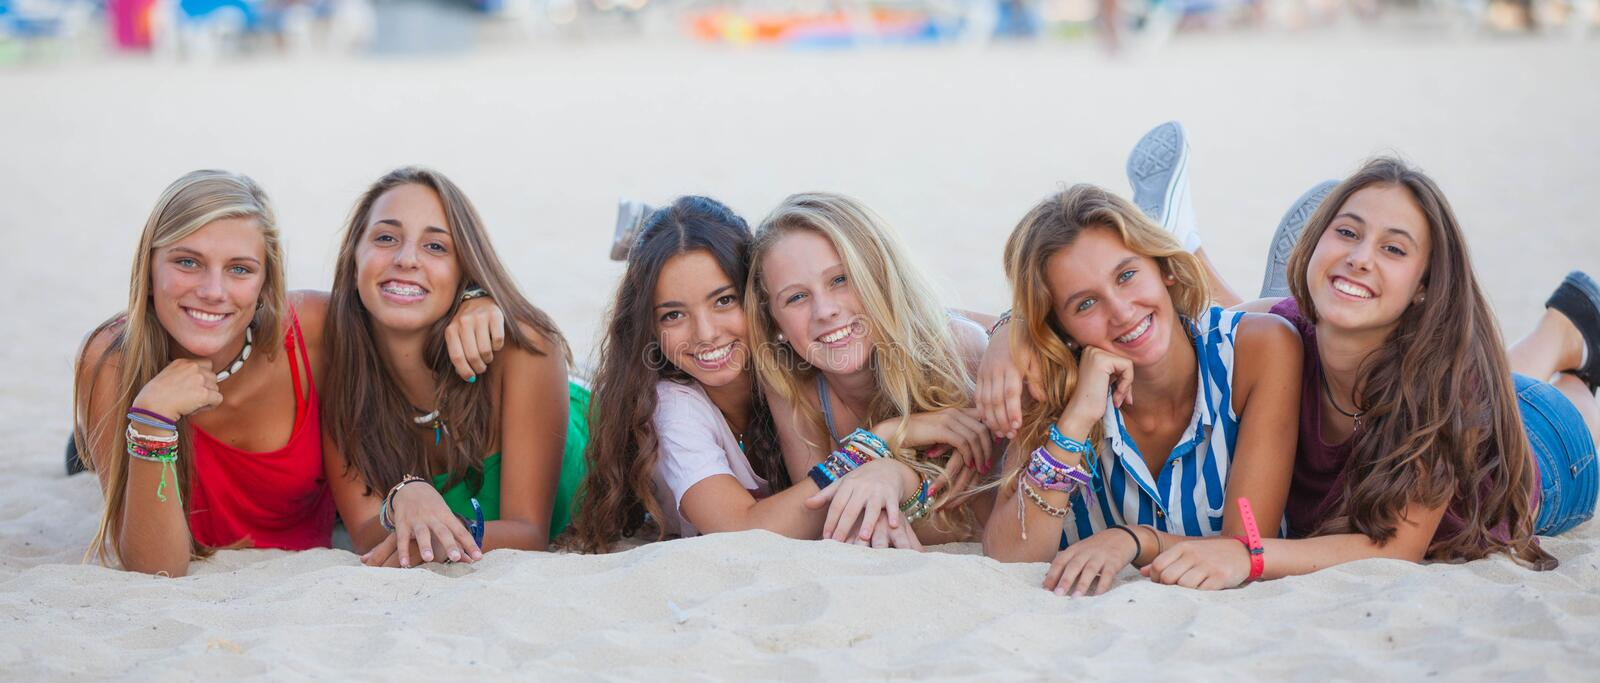 happy summer teens royalty free stock photos